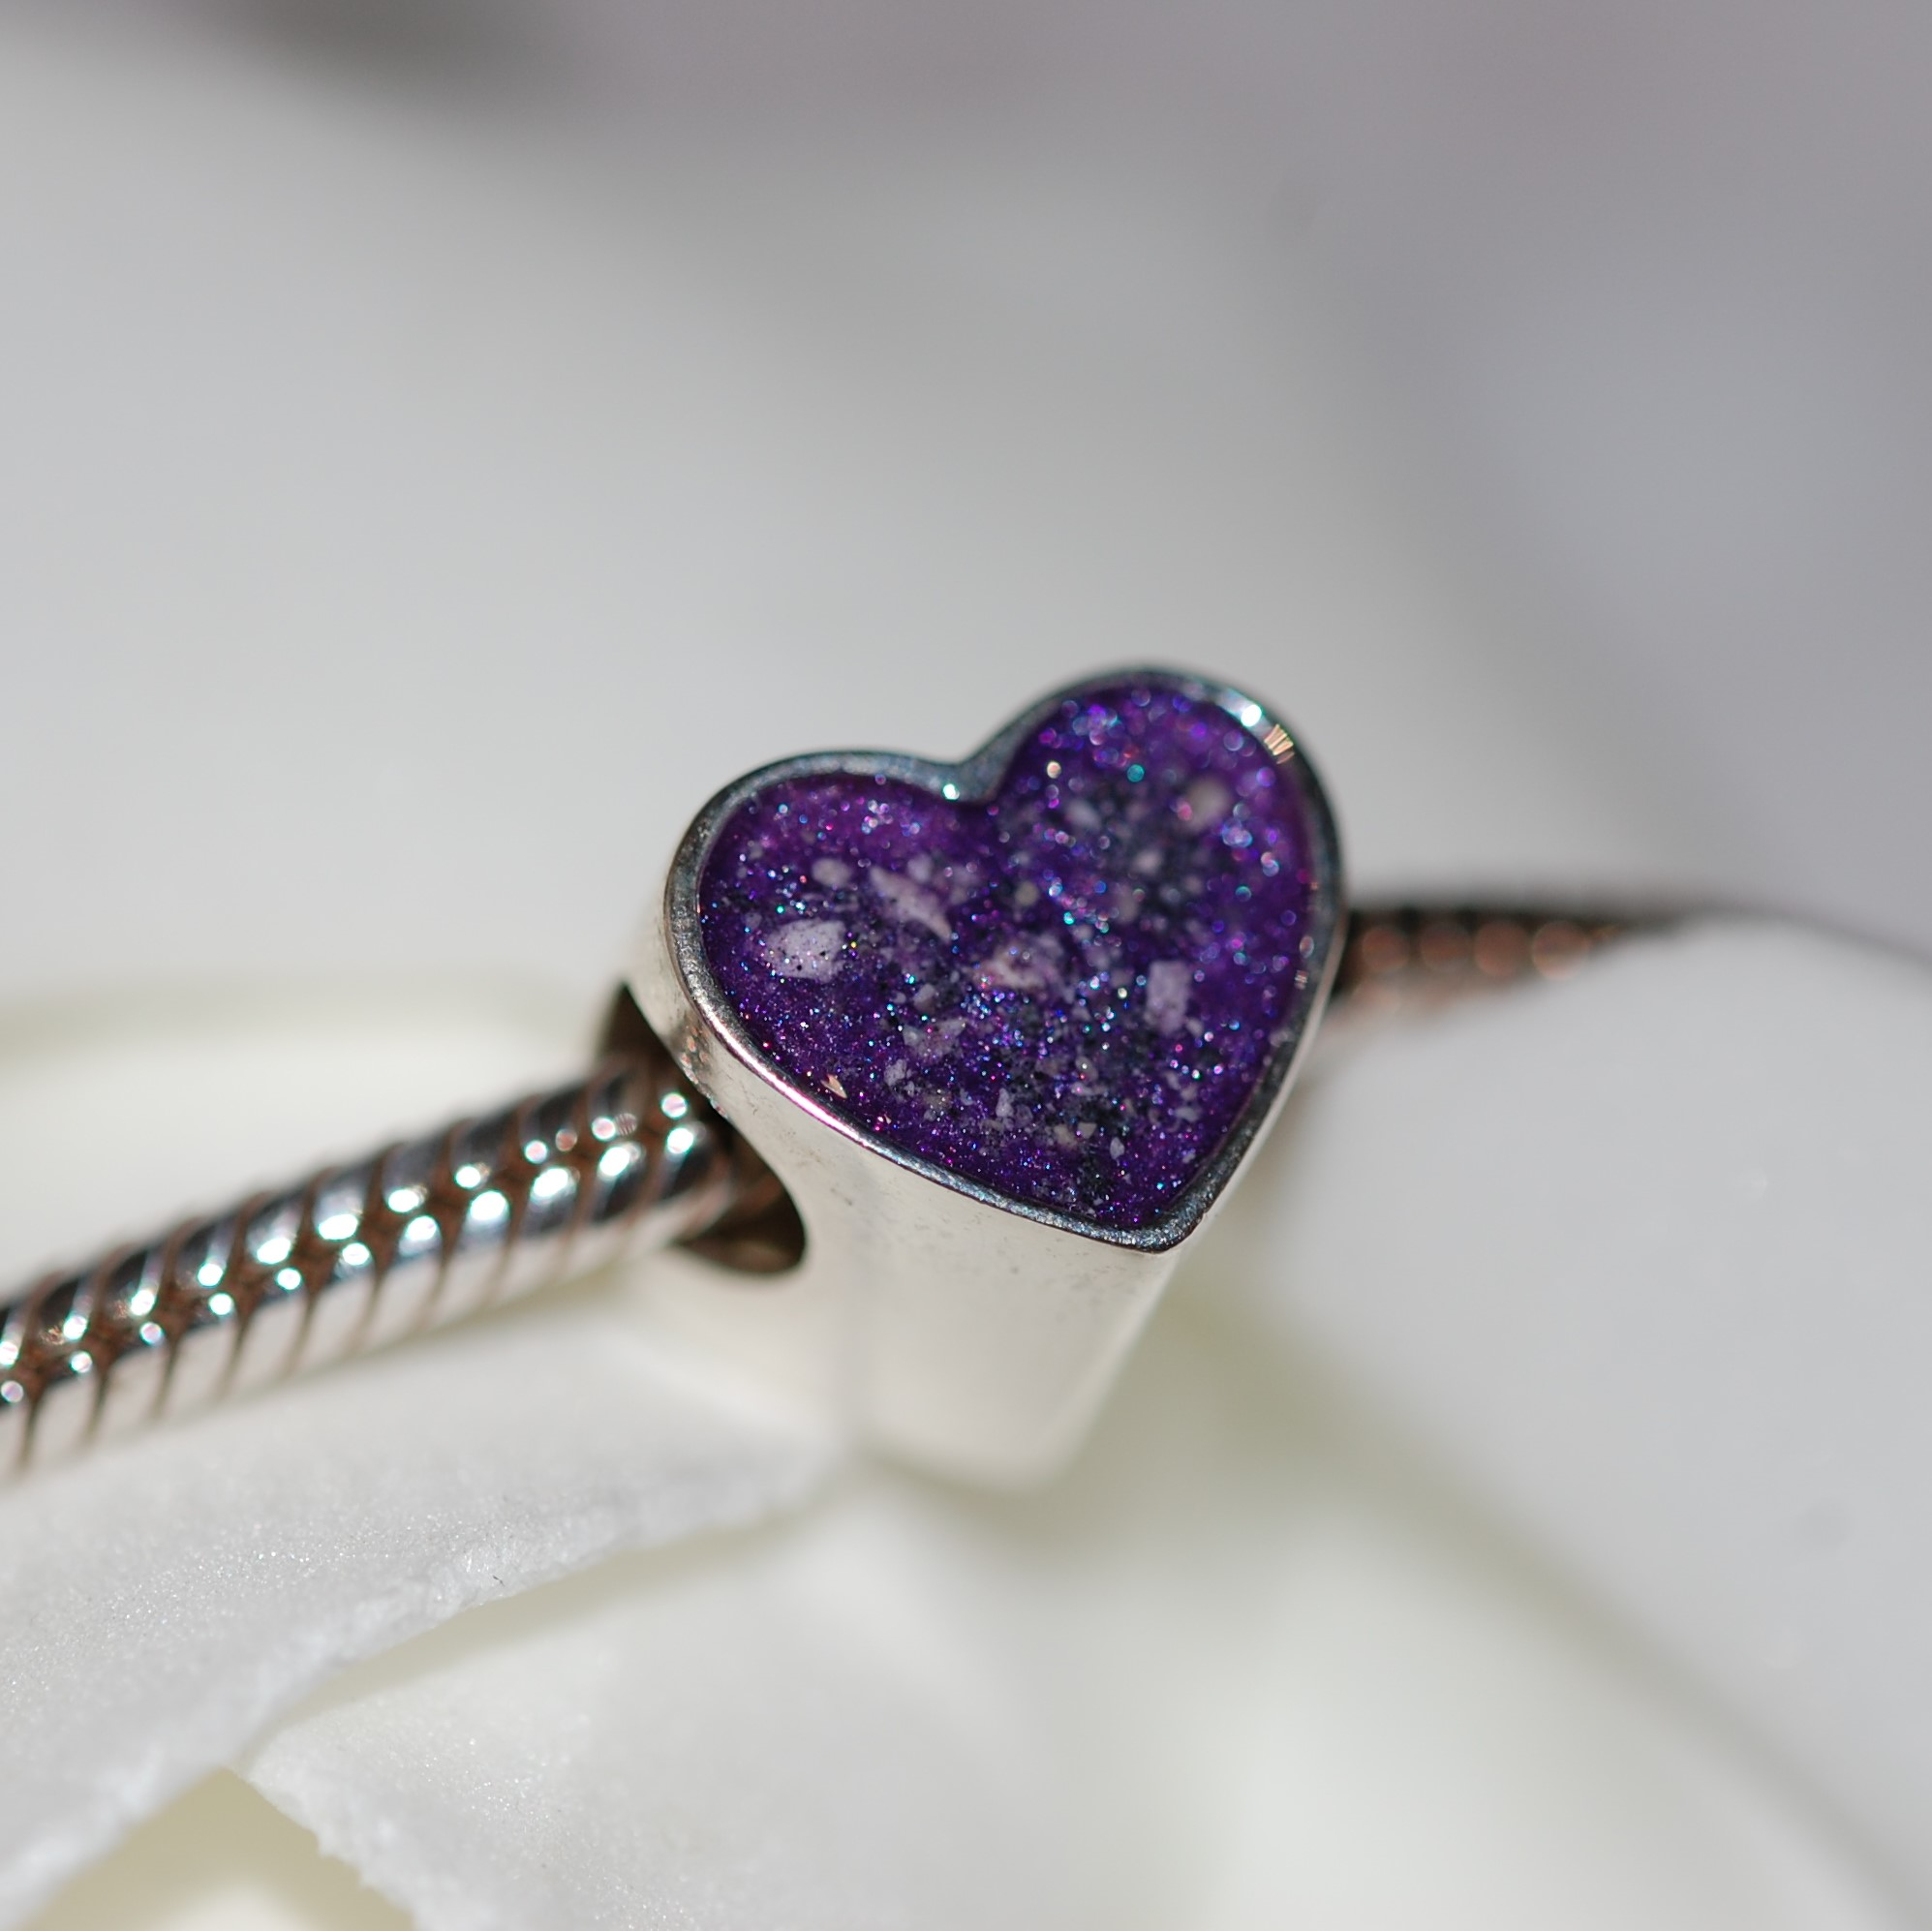 Pet memorial charm bead with your pet's fur or cremation ashes in resin